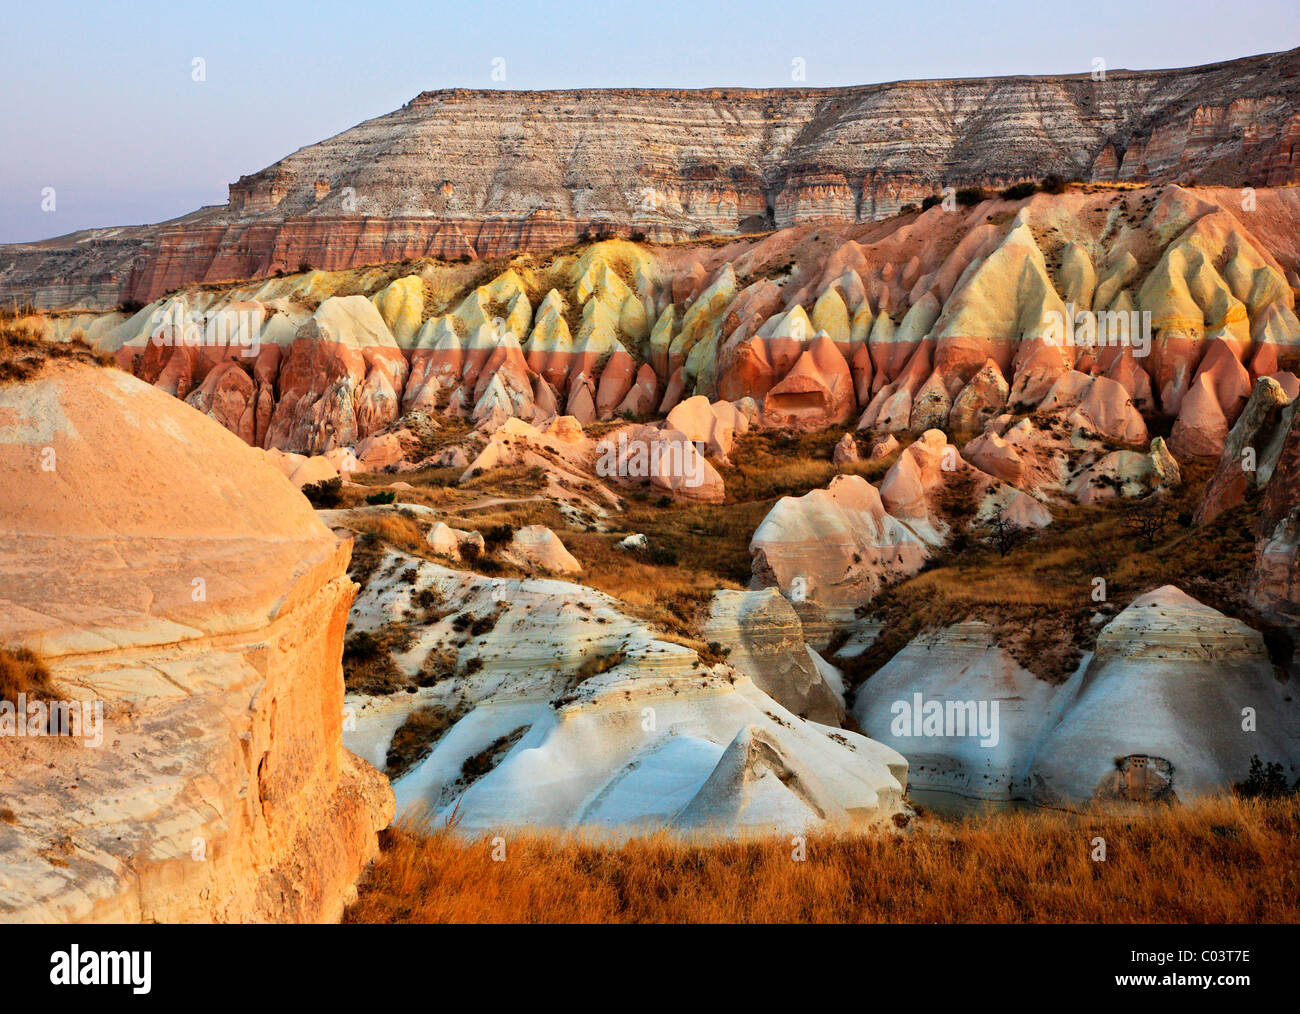 Great variety of shapes, forms and colors in the landscape of Cappadocia, Nevsehir, Turkey. Taken during a balloon - Stock Image